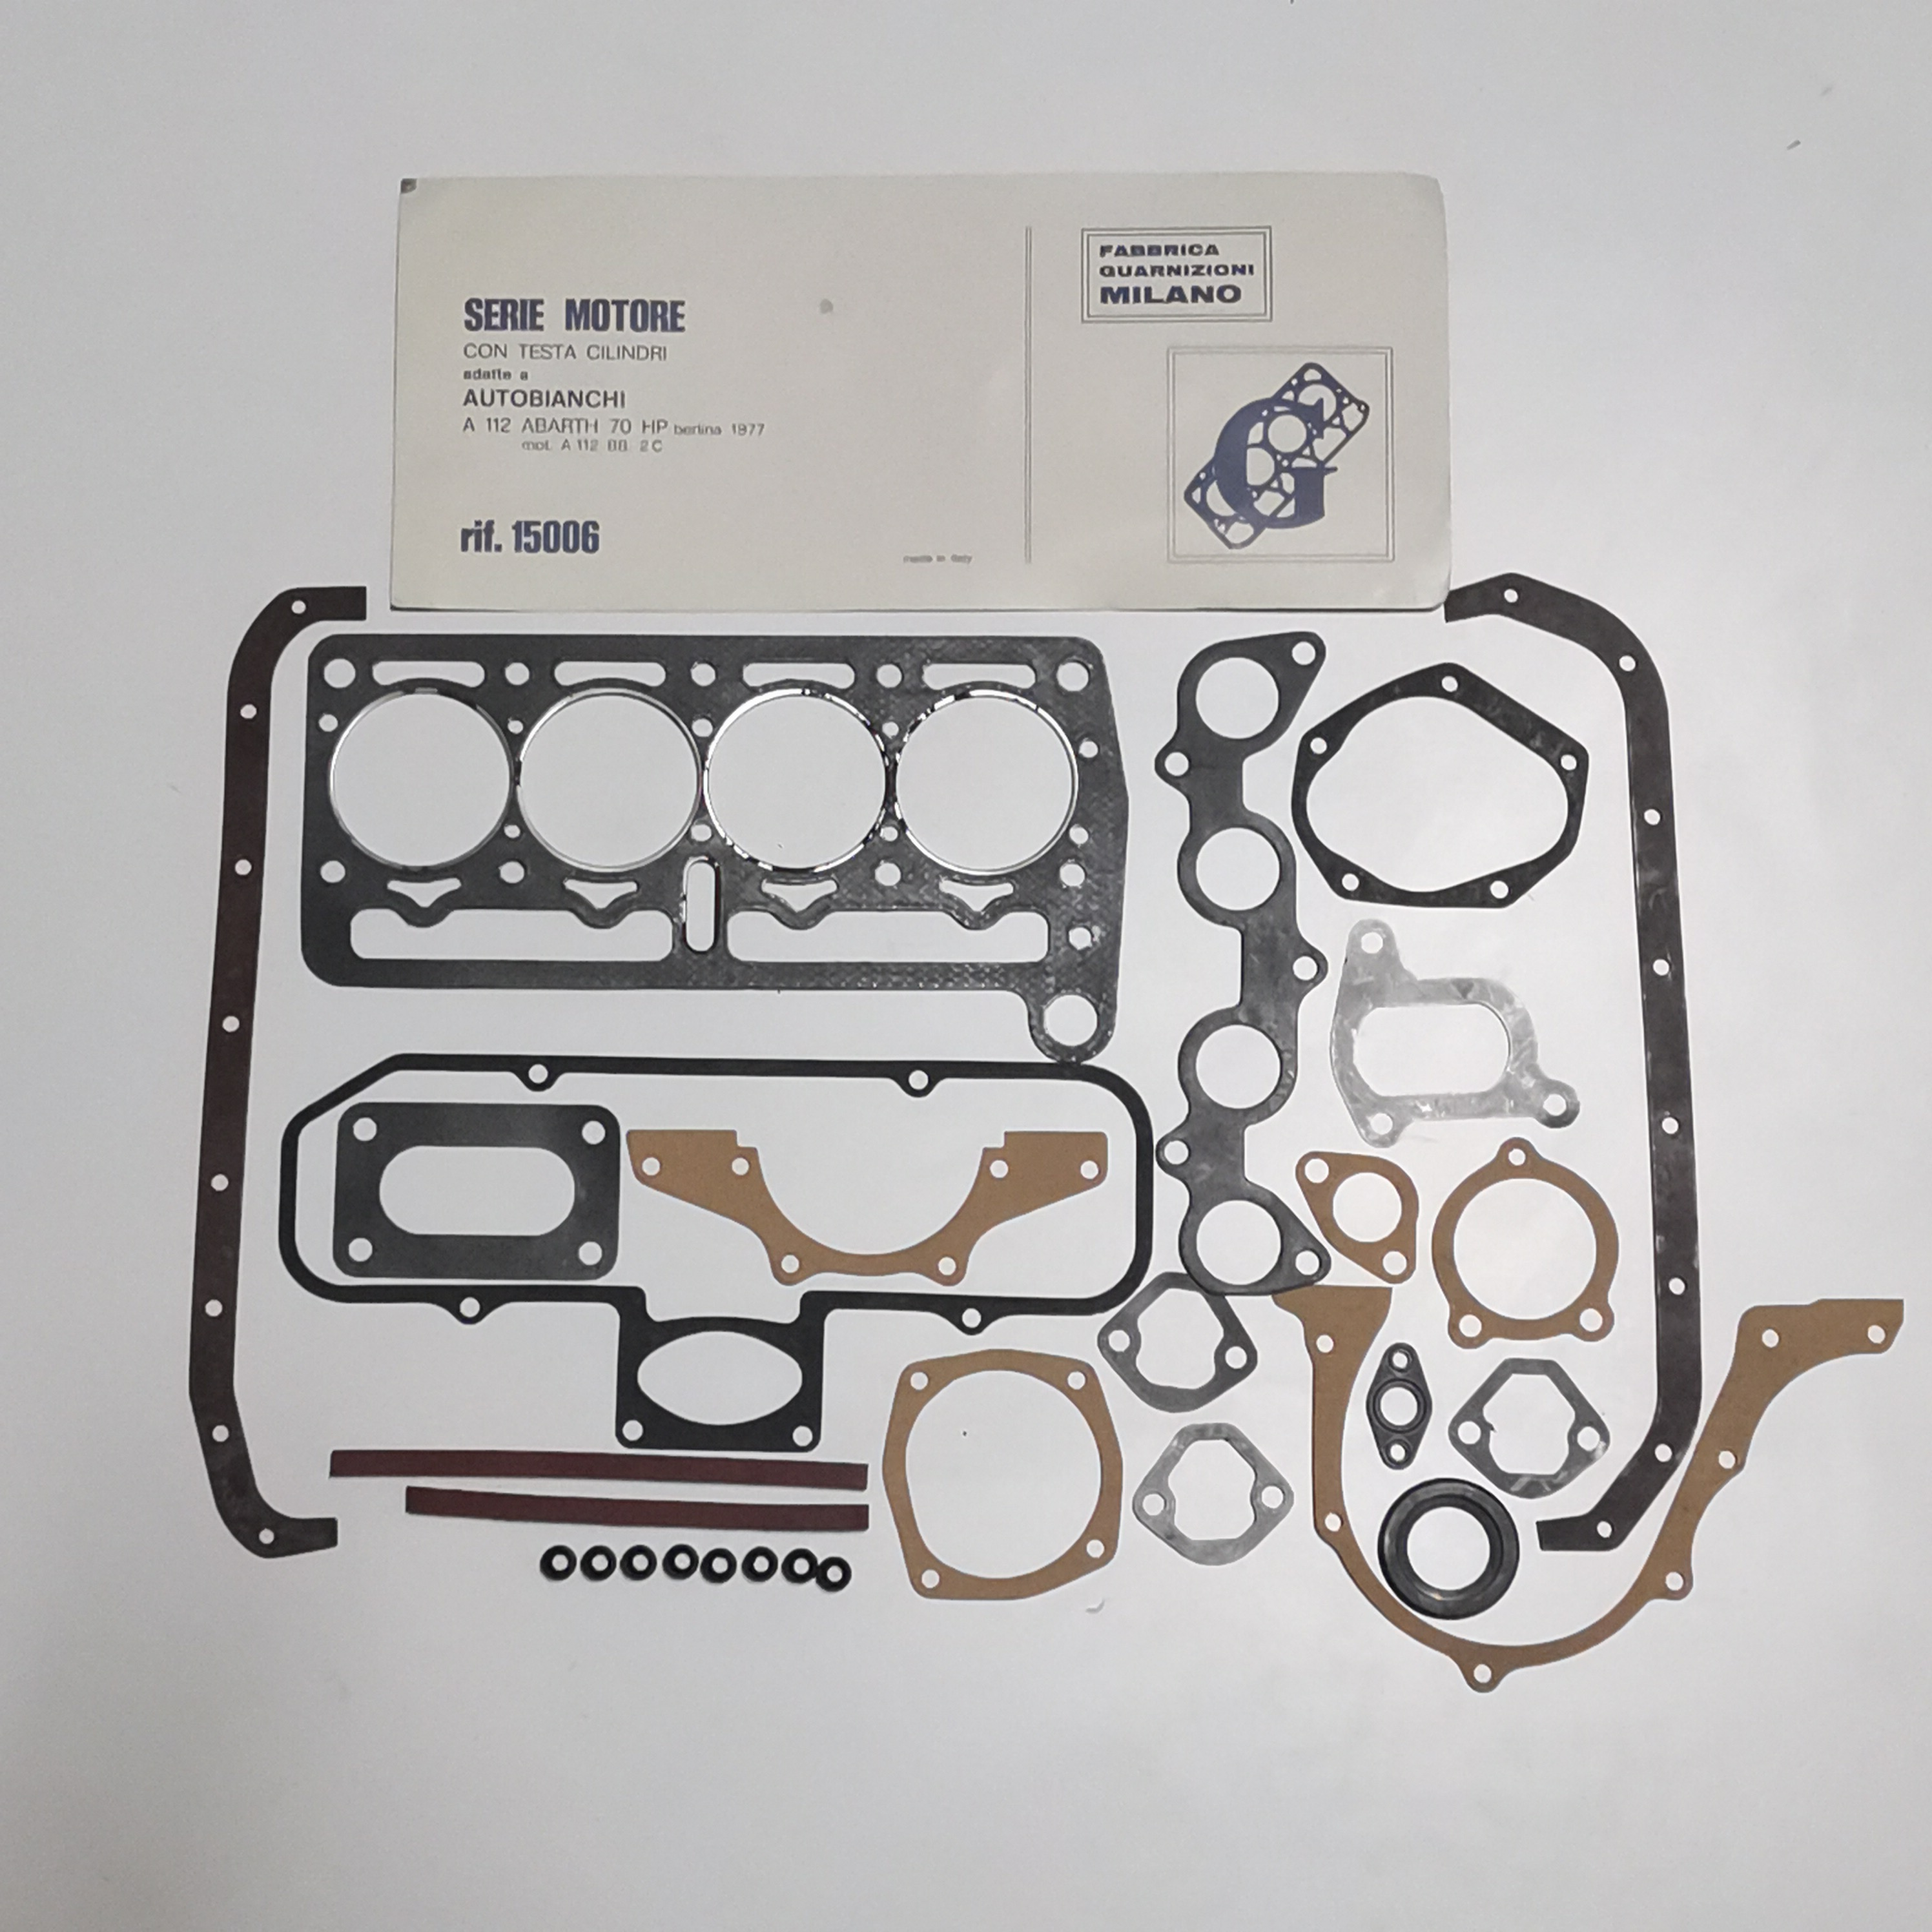 MOTOR GASKET KIT WITH AUTOBIANCHI HEAD A112 ABARTH GM 1500609